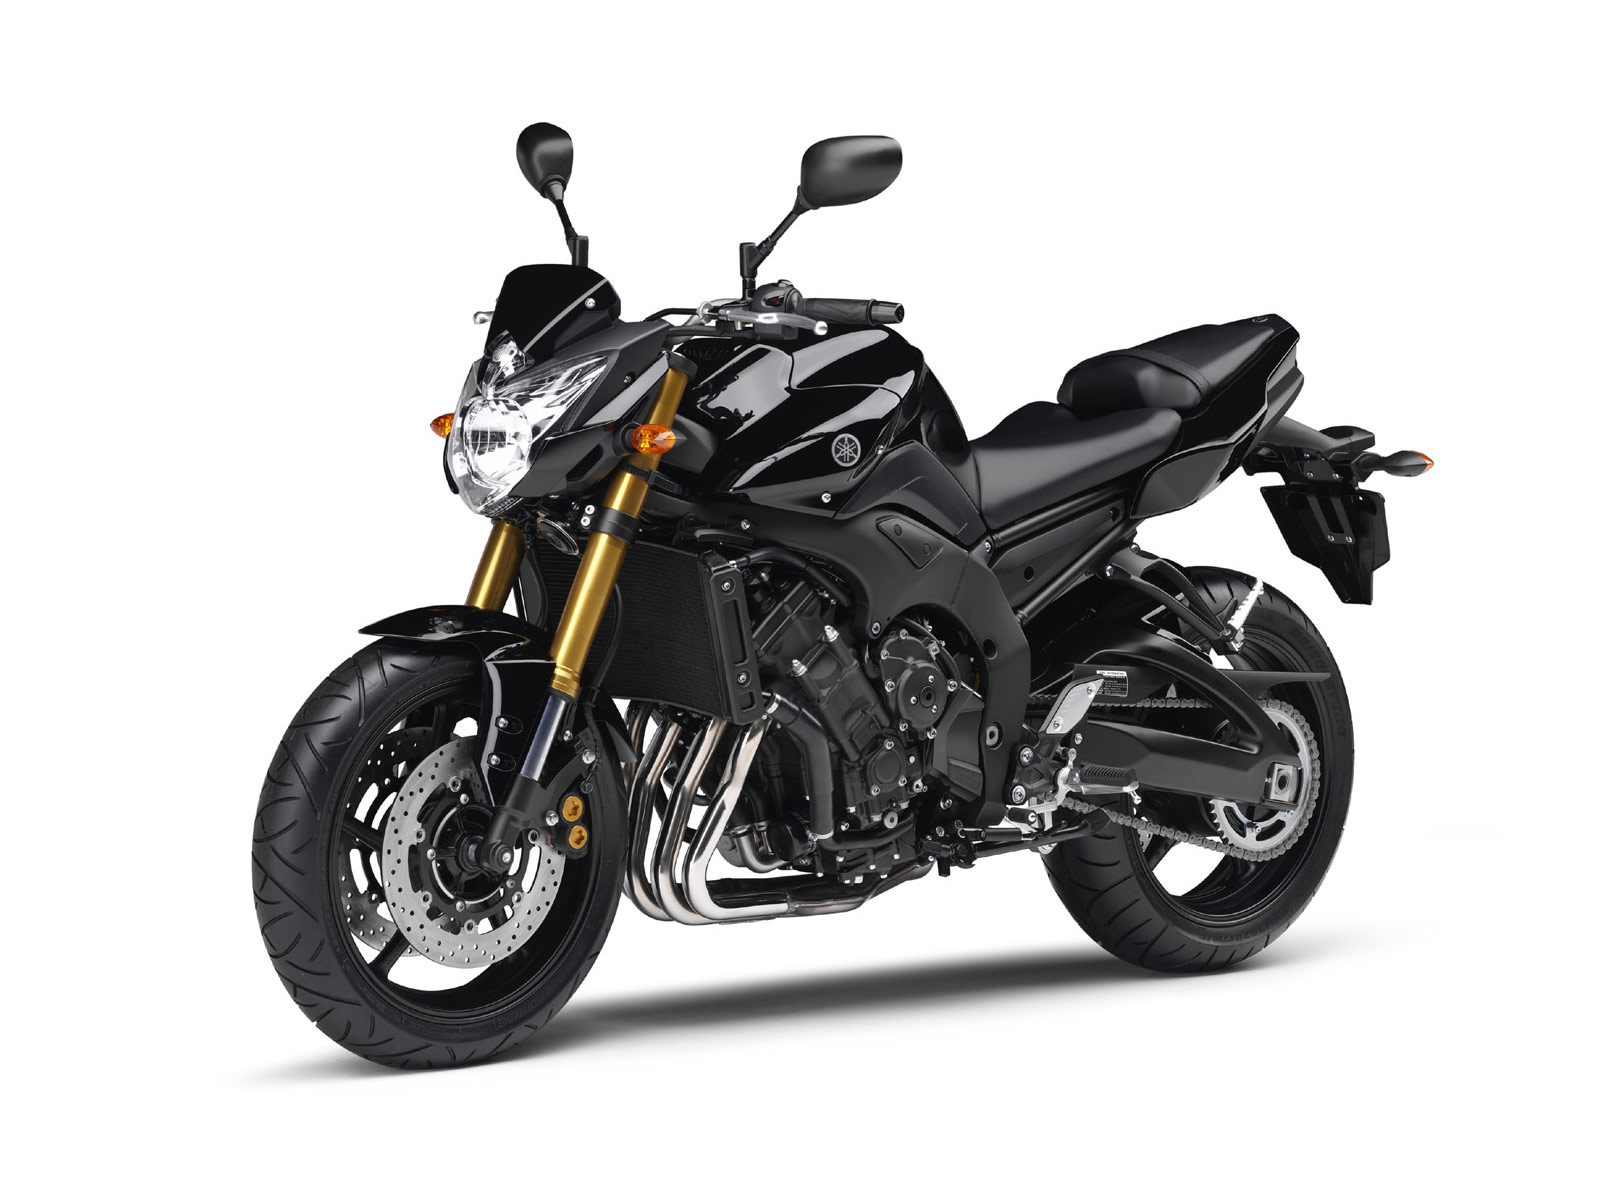 2011 yamaha fz8 motorcycle pictures review and specifications. Black Bedroom Furniture Sets. Home Design Ideas